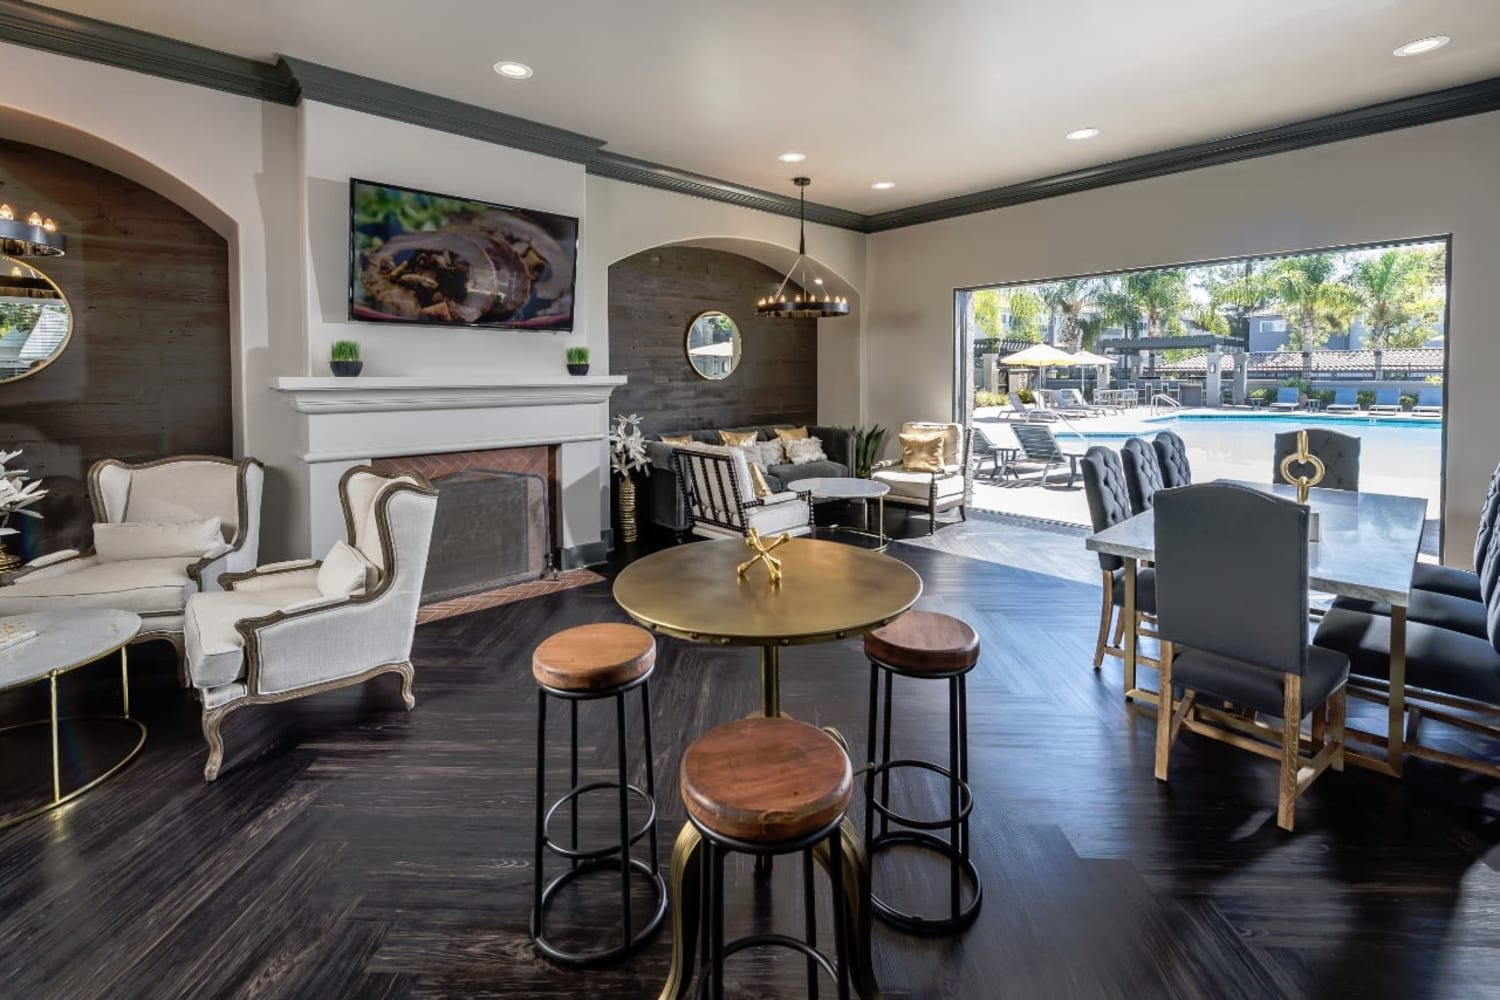 Madrid Apartments in Mission Viejo, California, offer a trendy clubhouse